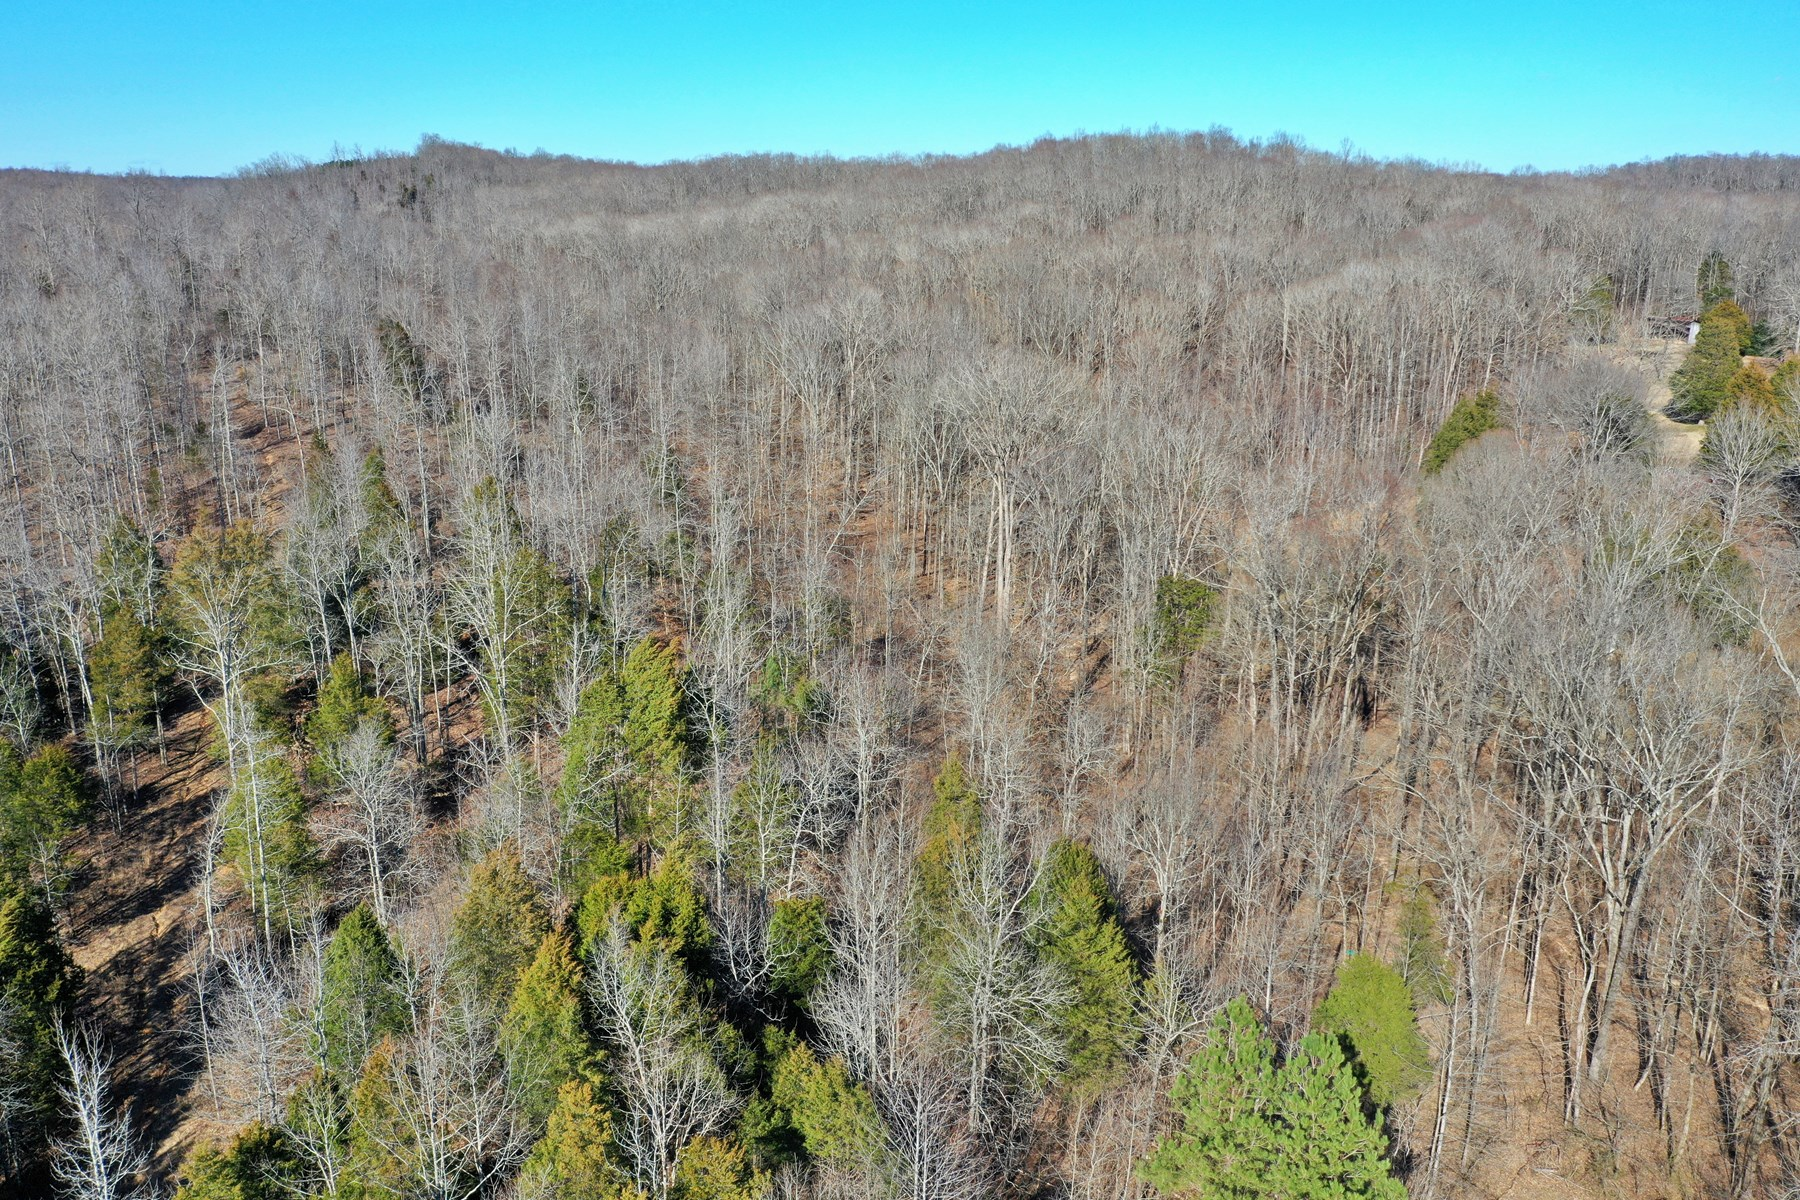 33.65 Ac Unrestricted, Near Tennessee River; Hunting